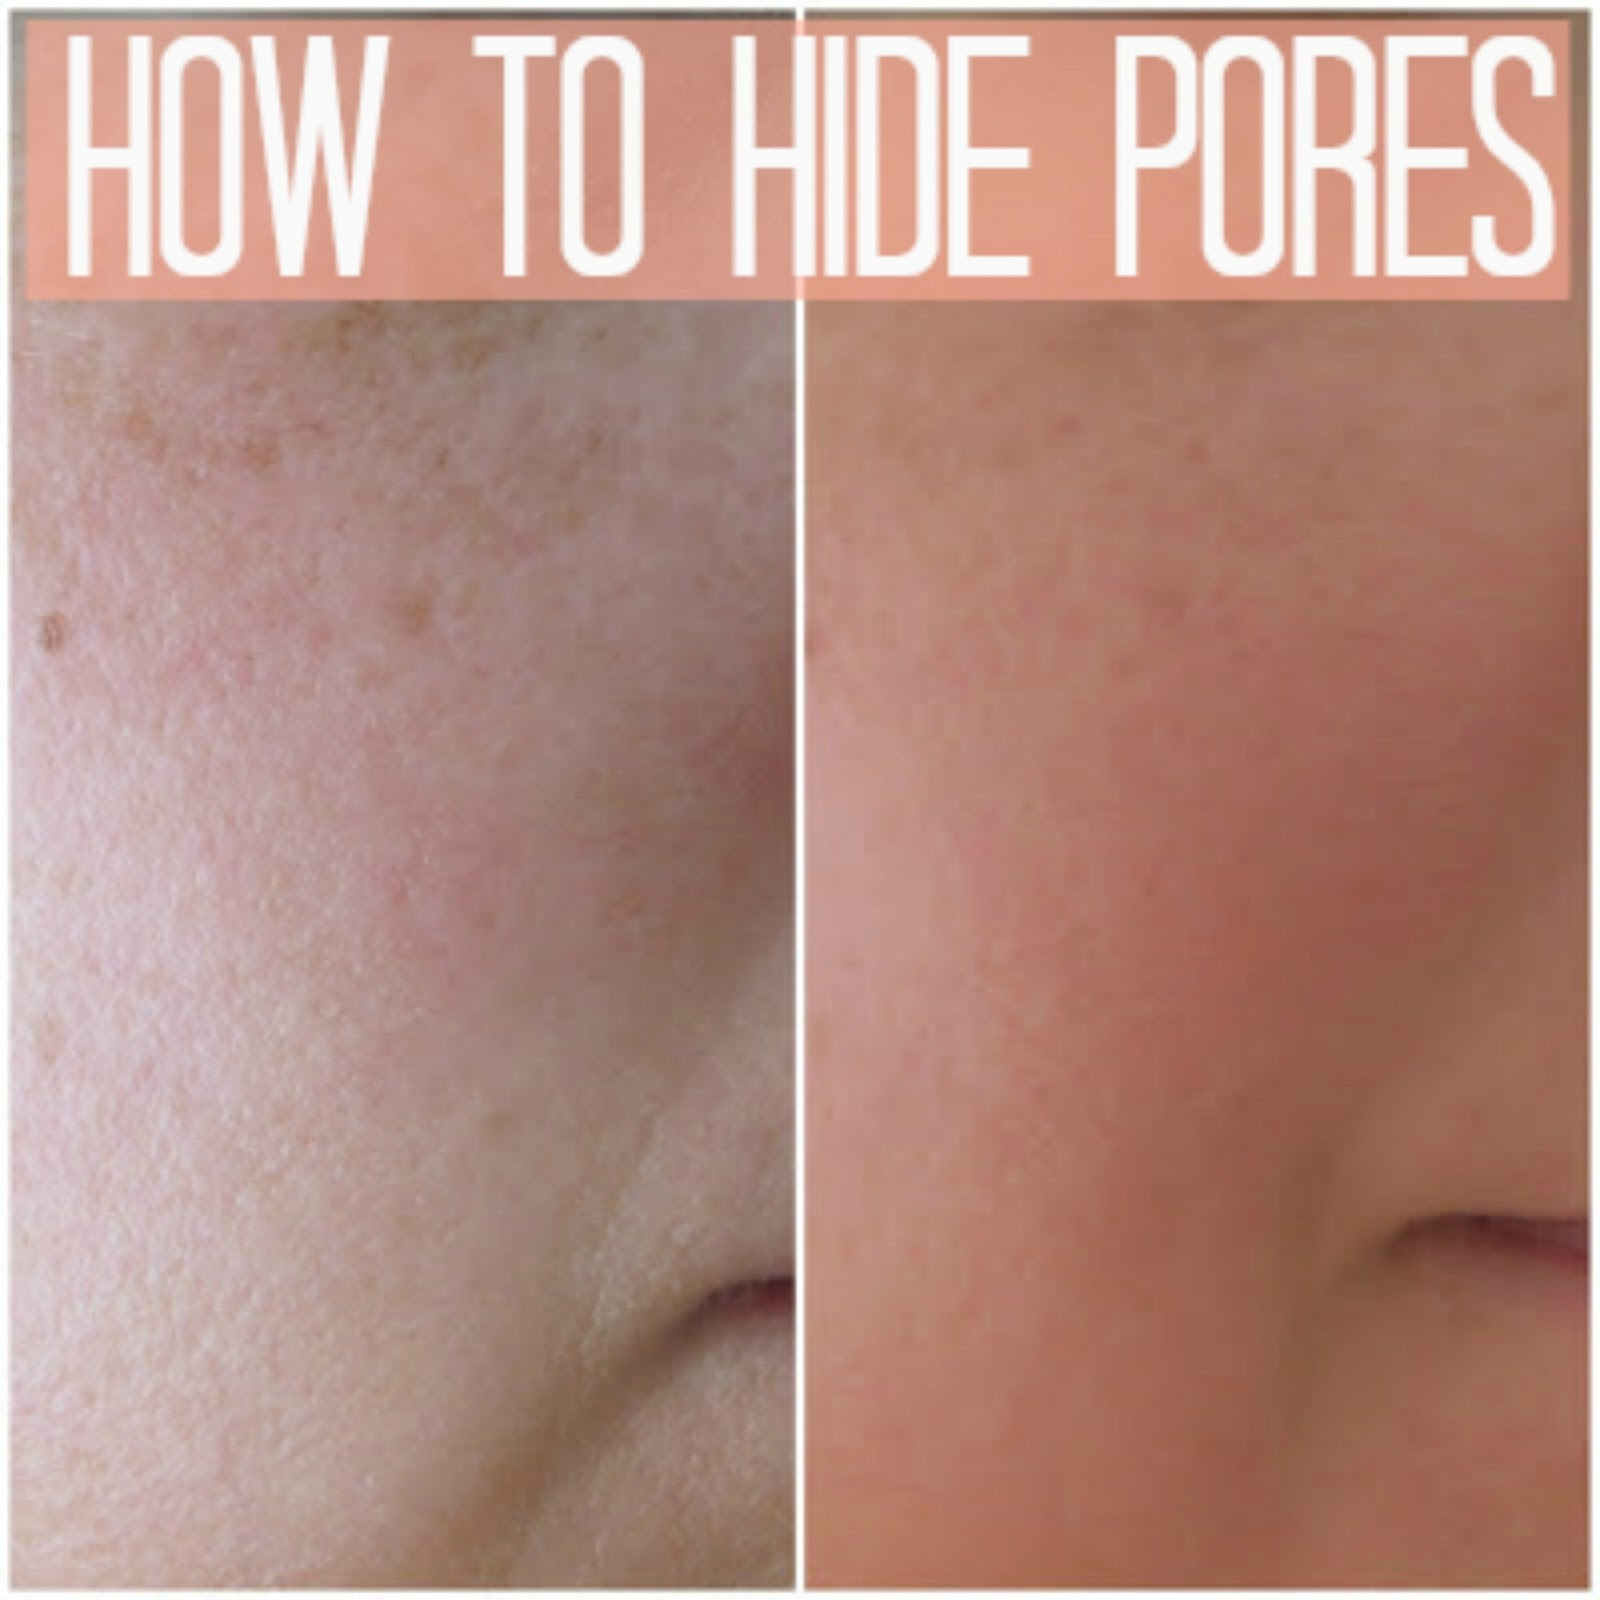 Beauty Blogger In Atlanta: How To: Hide Pores